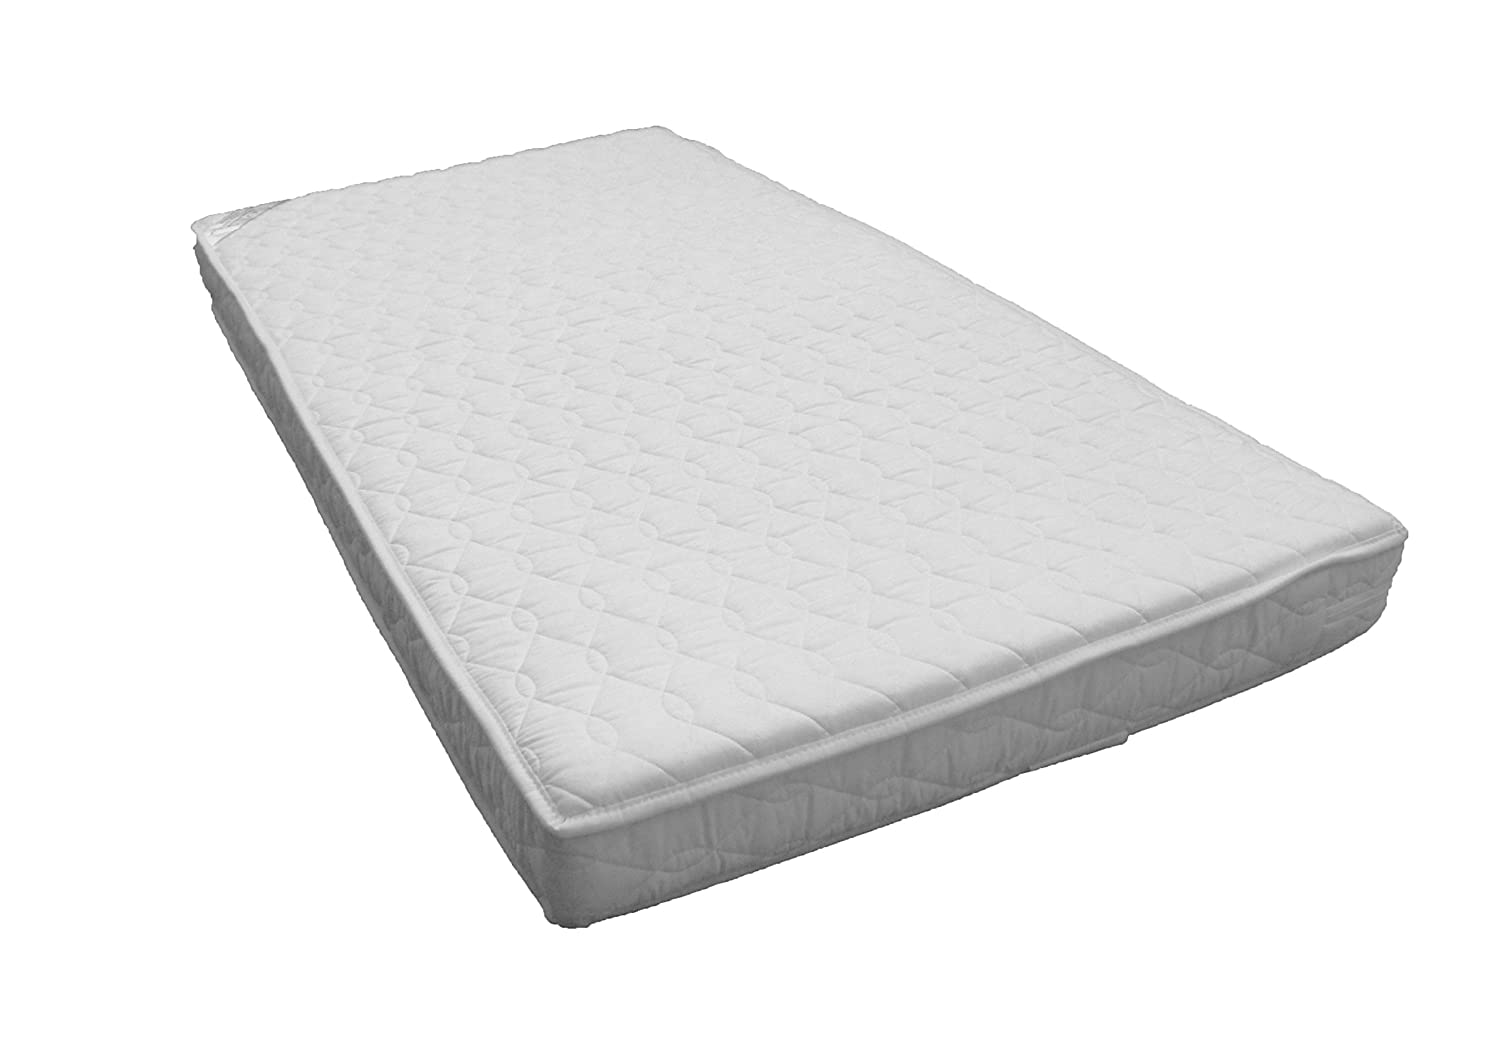 KATY® Microfibre Pocket Sprung Cot Mattress - FULLY BOUND With **TAPED EDGED** 120x60 x 10cm Thick - Will Fit M&P Cots 200 Size As Well As Other Makes : British Made With High Grade Density Foam CMHR28 BABY best BUYS BBB-POCKET120